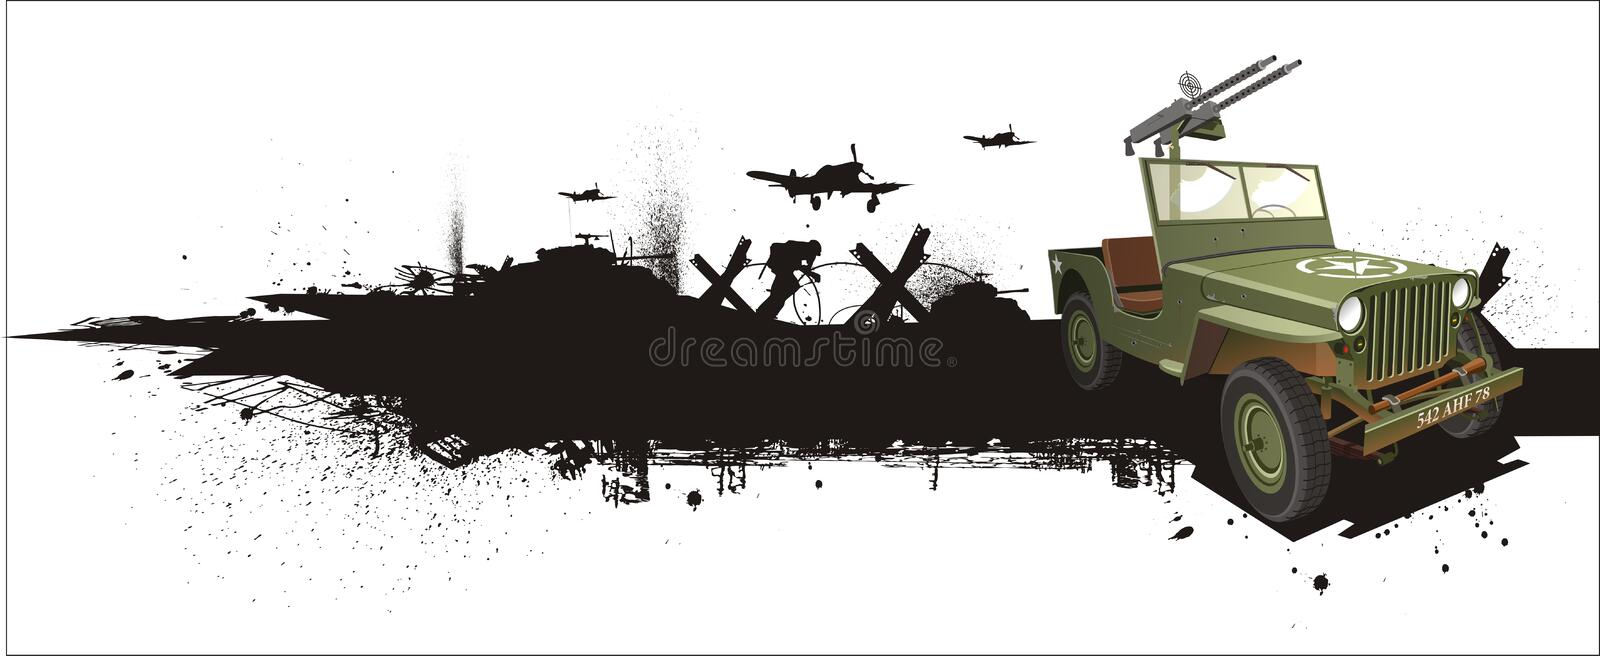 Military Willis Jeep In Grune Style Stock Photo